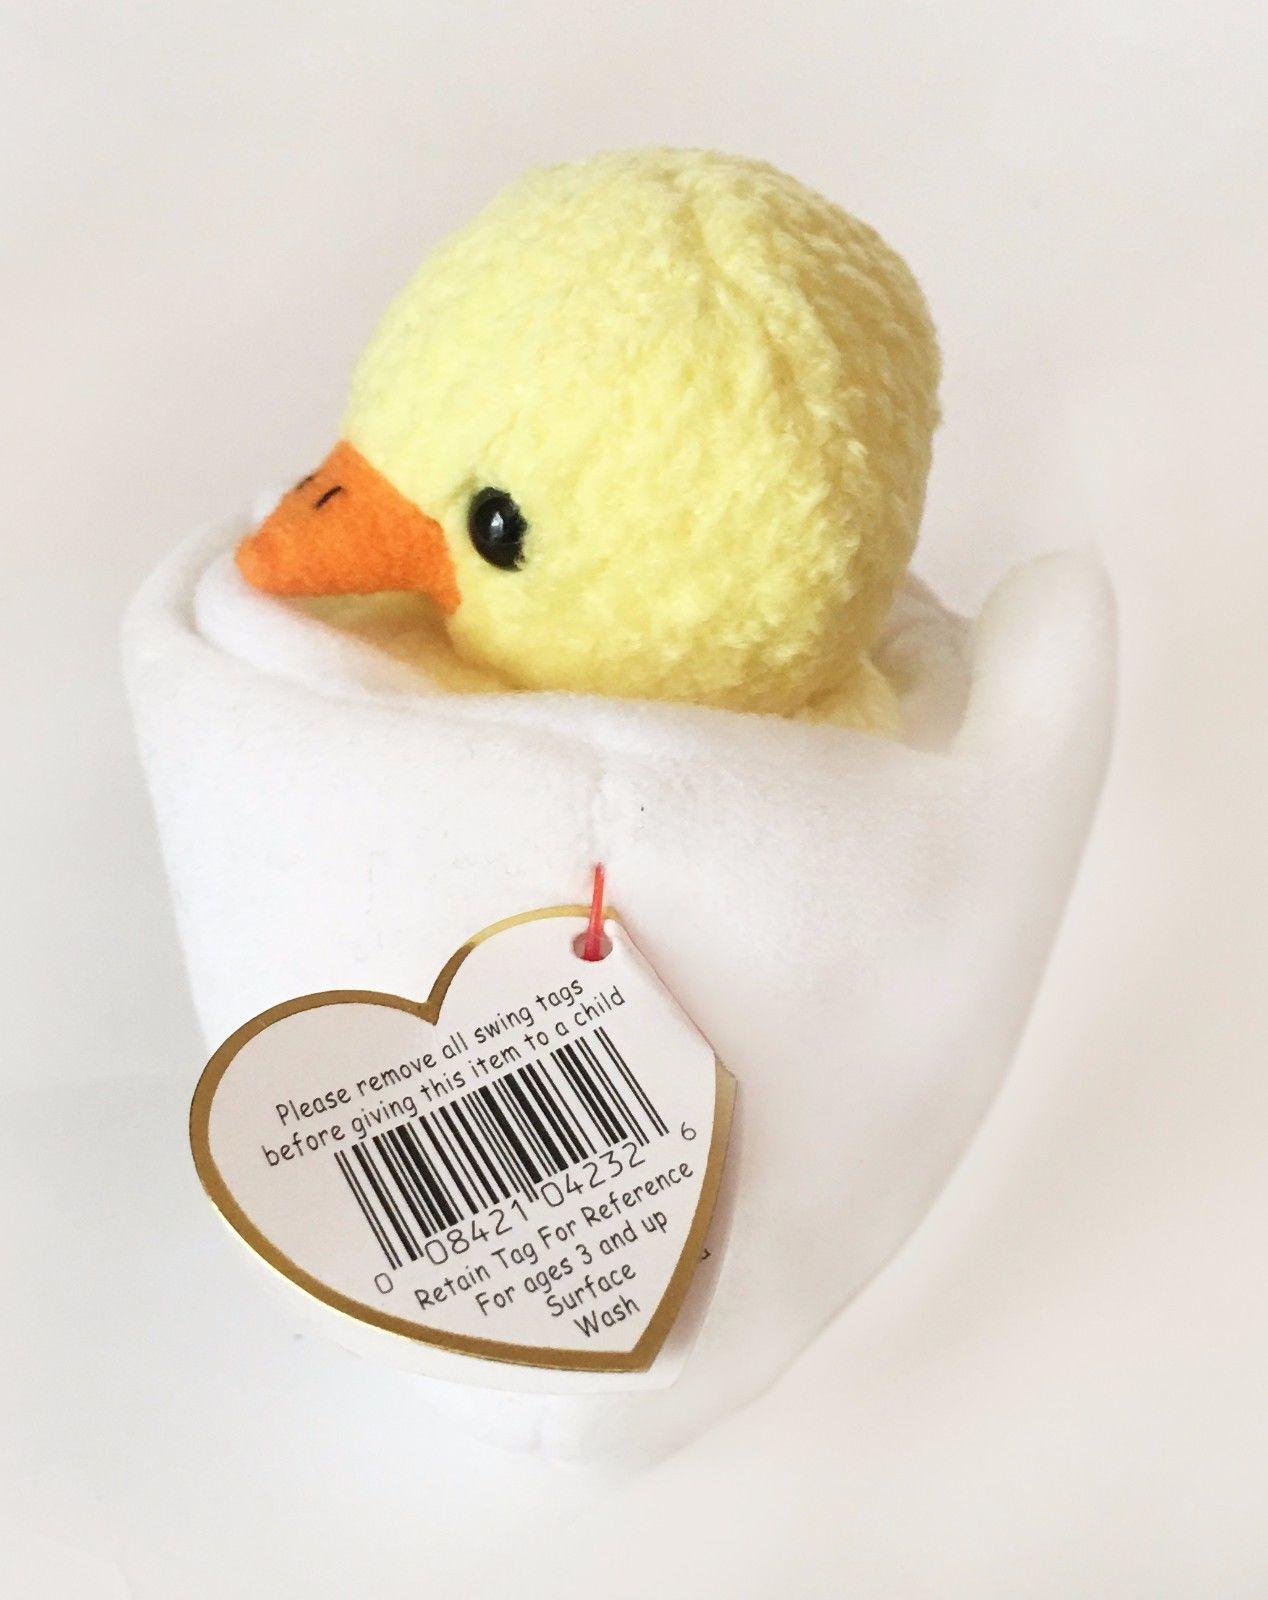 ... TY Beanie Baby Rare Eggbert Chick in Egg with Gasport Hang Tag Error ... 4466e2289b9d